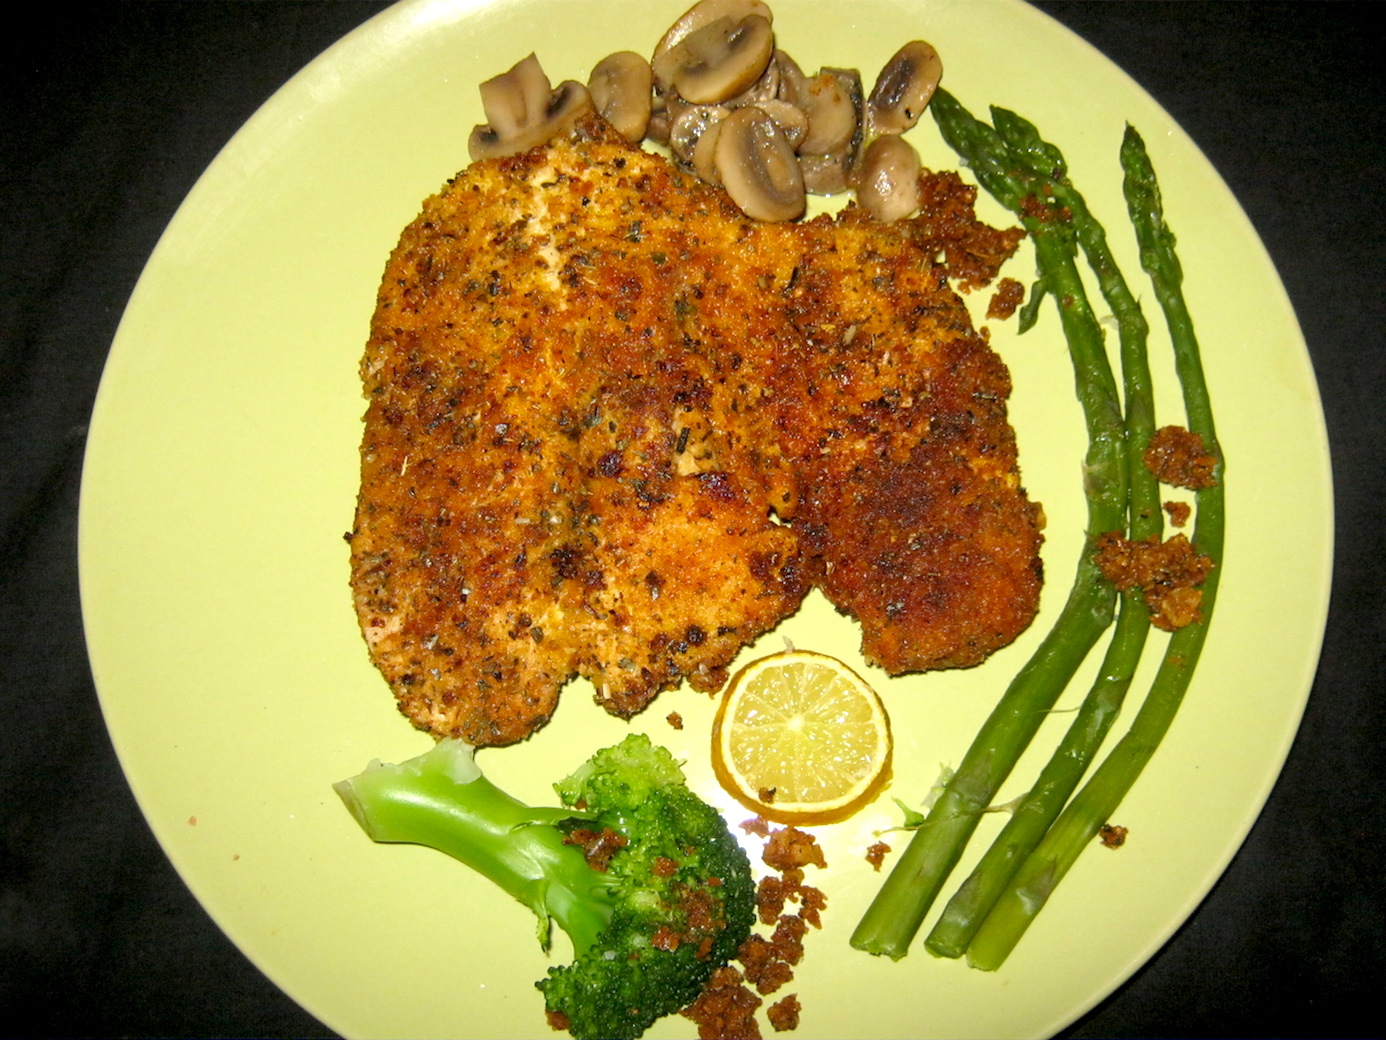 Chicken Schnitzel with green asparagus, button mushrooms, broccoli, buttered breadcrumbs and lemon slice